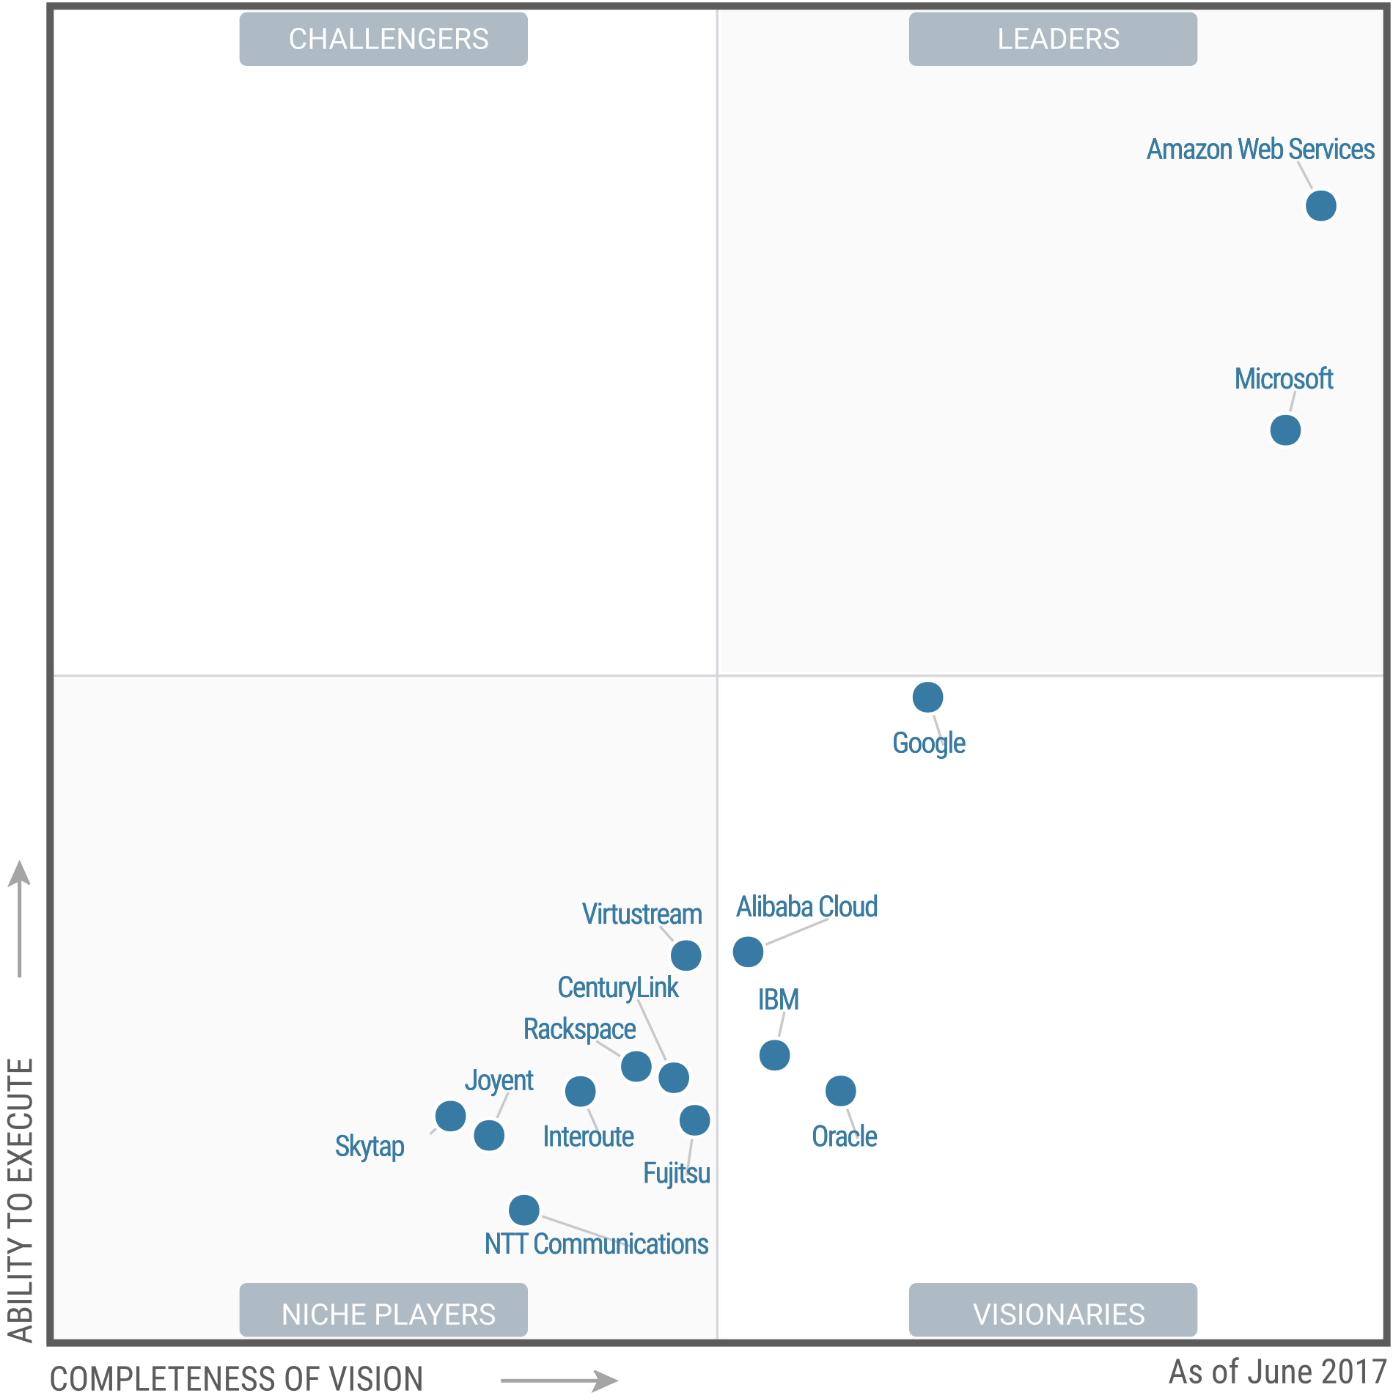 Gartner Chart - AWS vs GCP